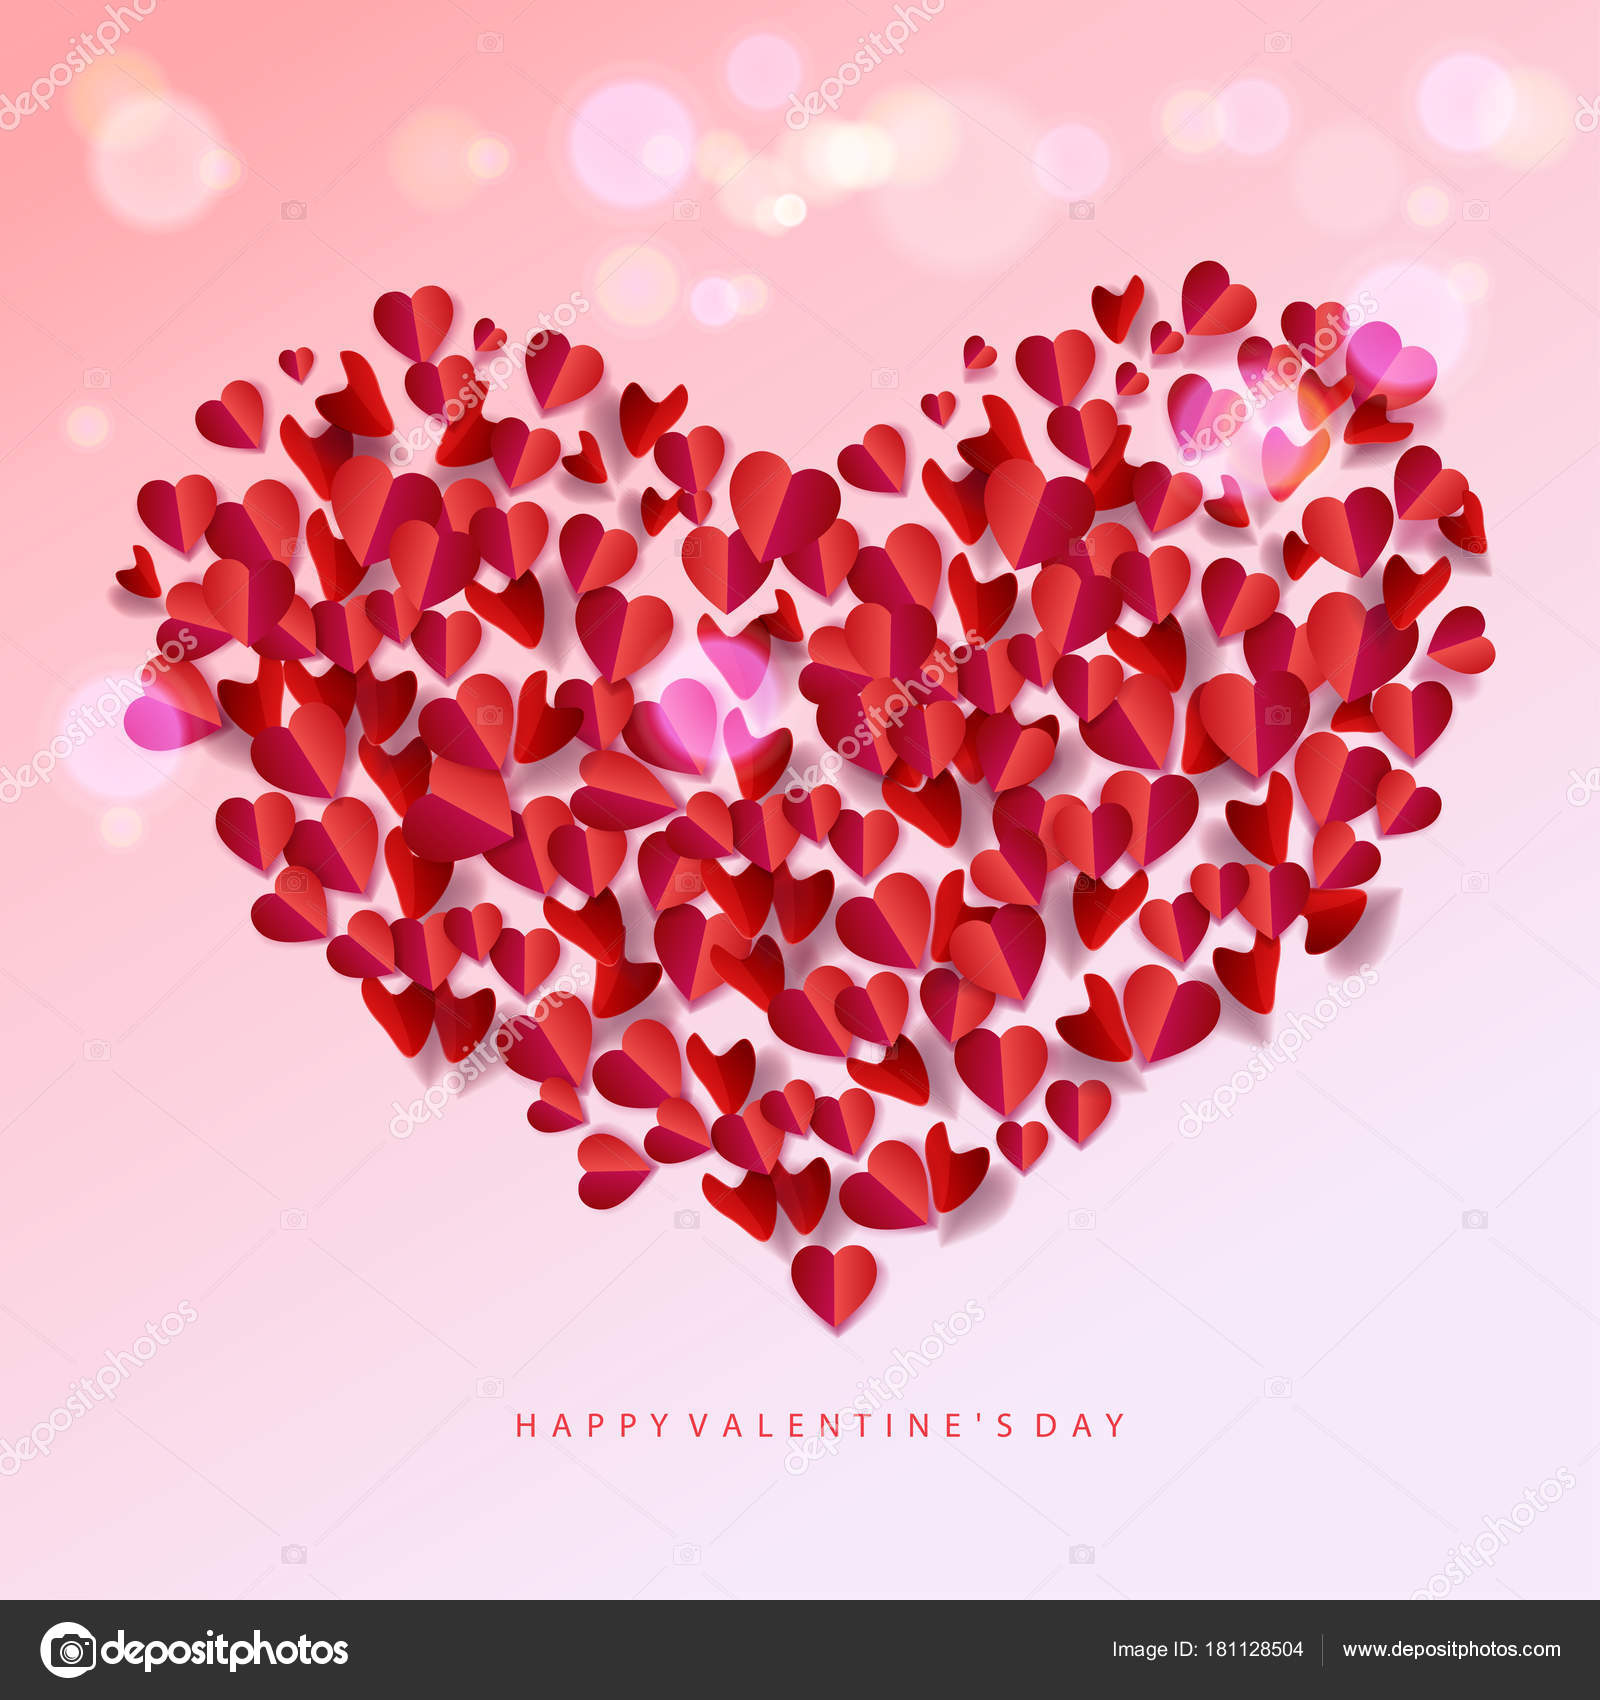 Happy Valentines Day Romance Background Heart Shapes Blurred